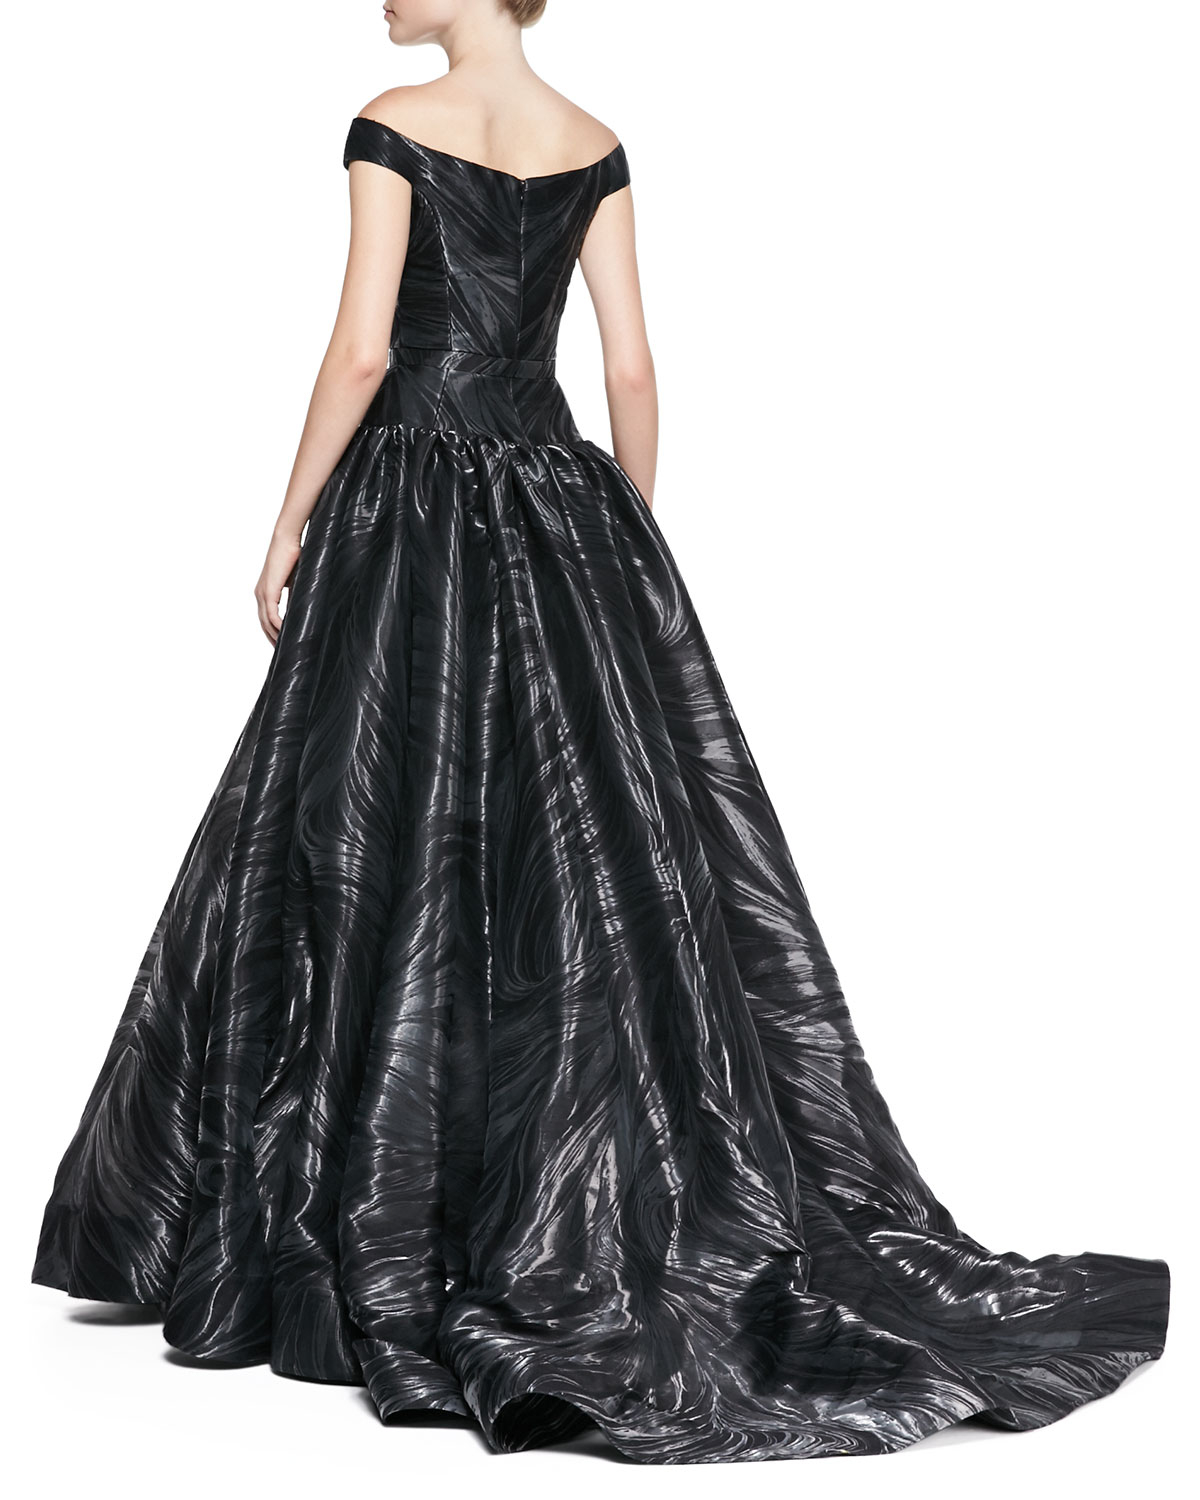 Christian Siriano Dresses - ShopStyle